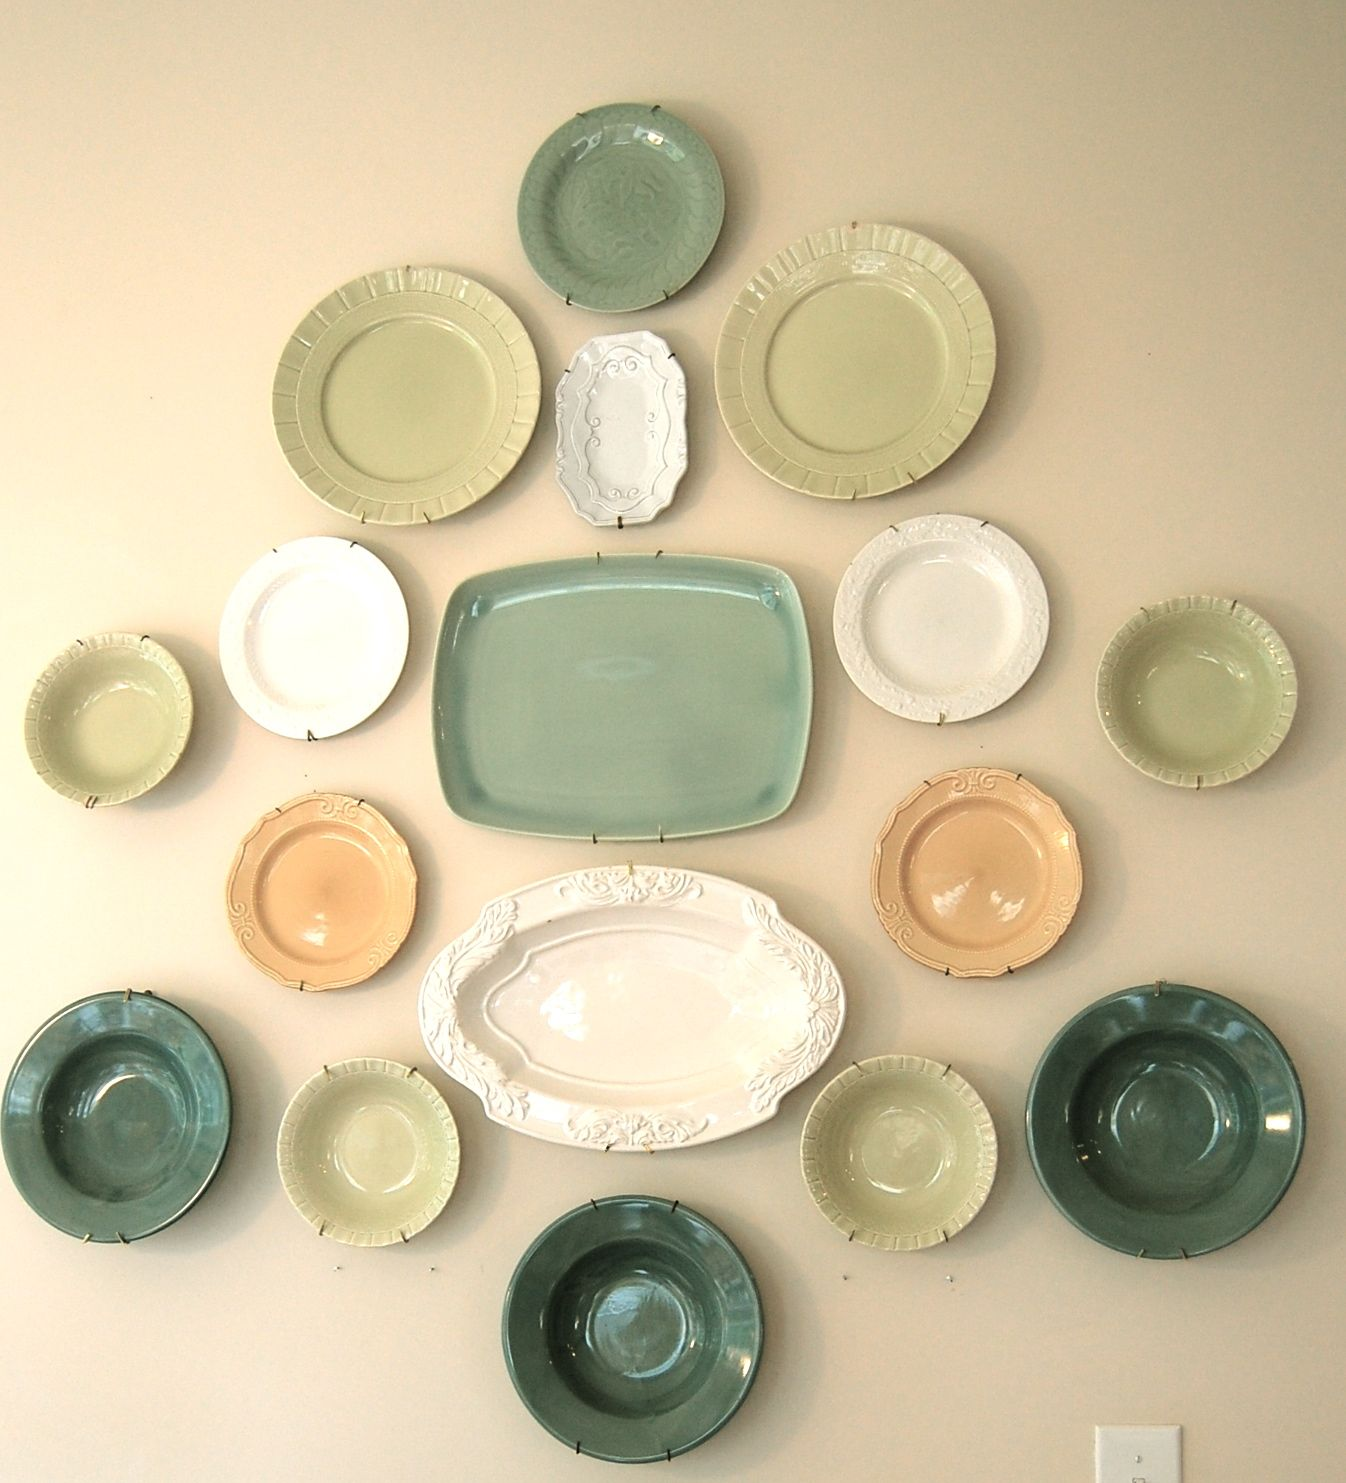 plates on the wall | Pinterest | Walls, Plate wall and Decorating